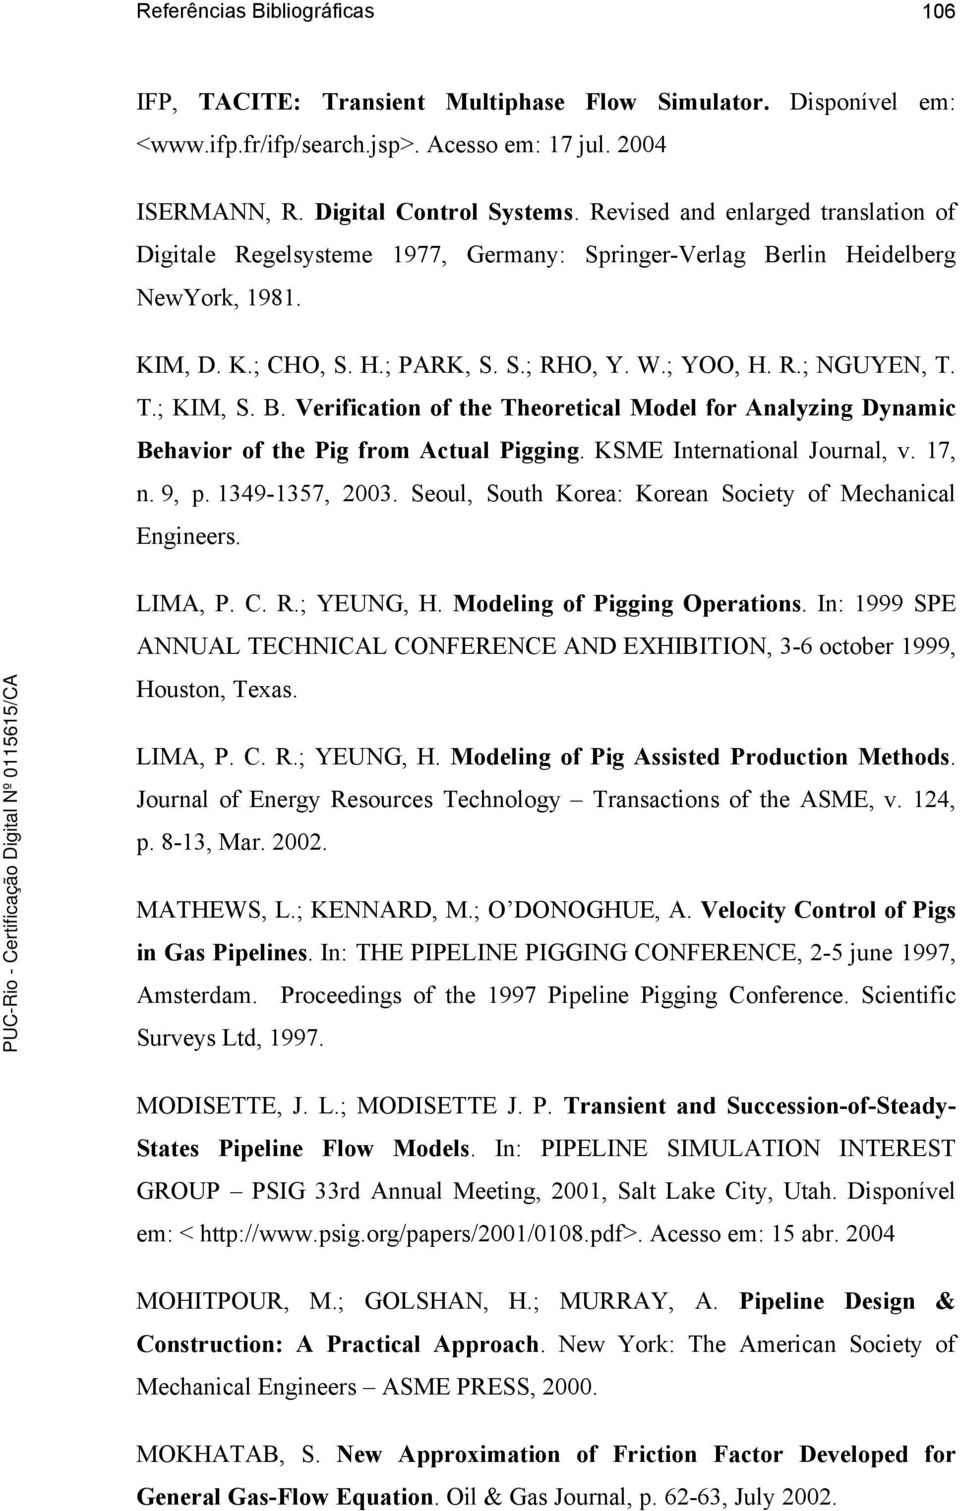 T.; KIM, S. B. Verification of the Theoretical Model for Analyzing Dynamic Behavior of the Pig from Actual Pigging. KSME International Journal, v. 17, n. 9, p. 1349-1357, 2003.